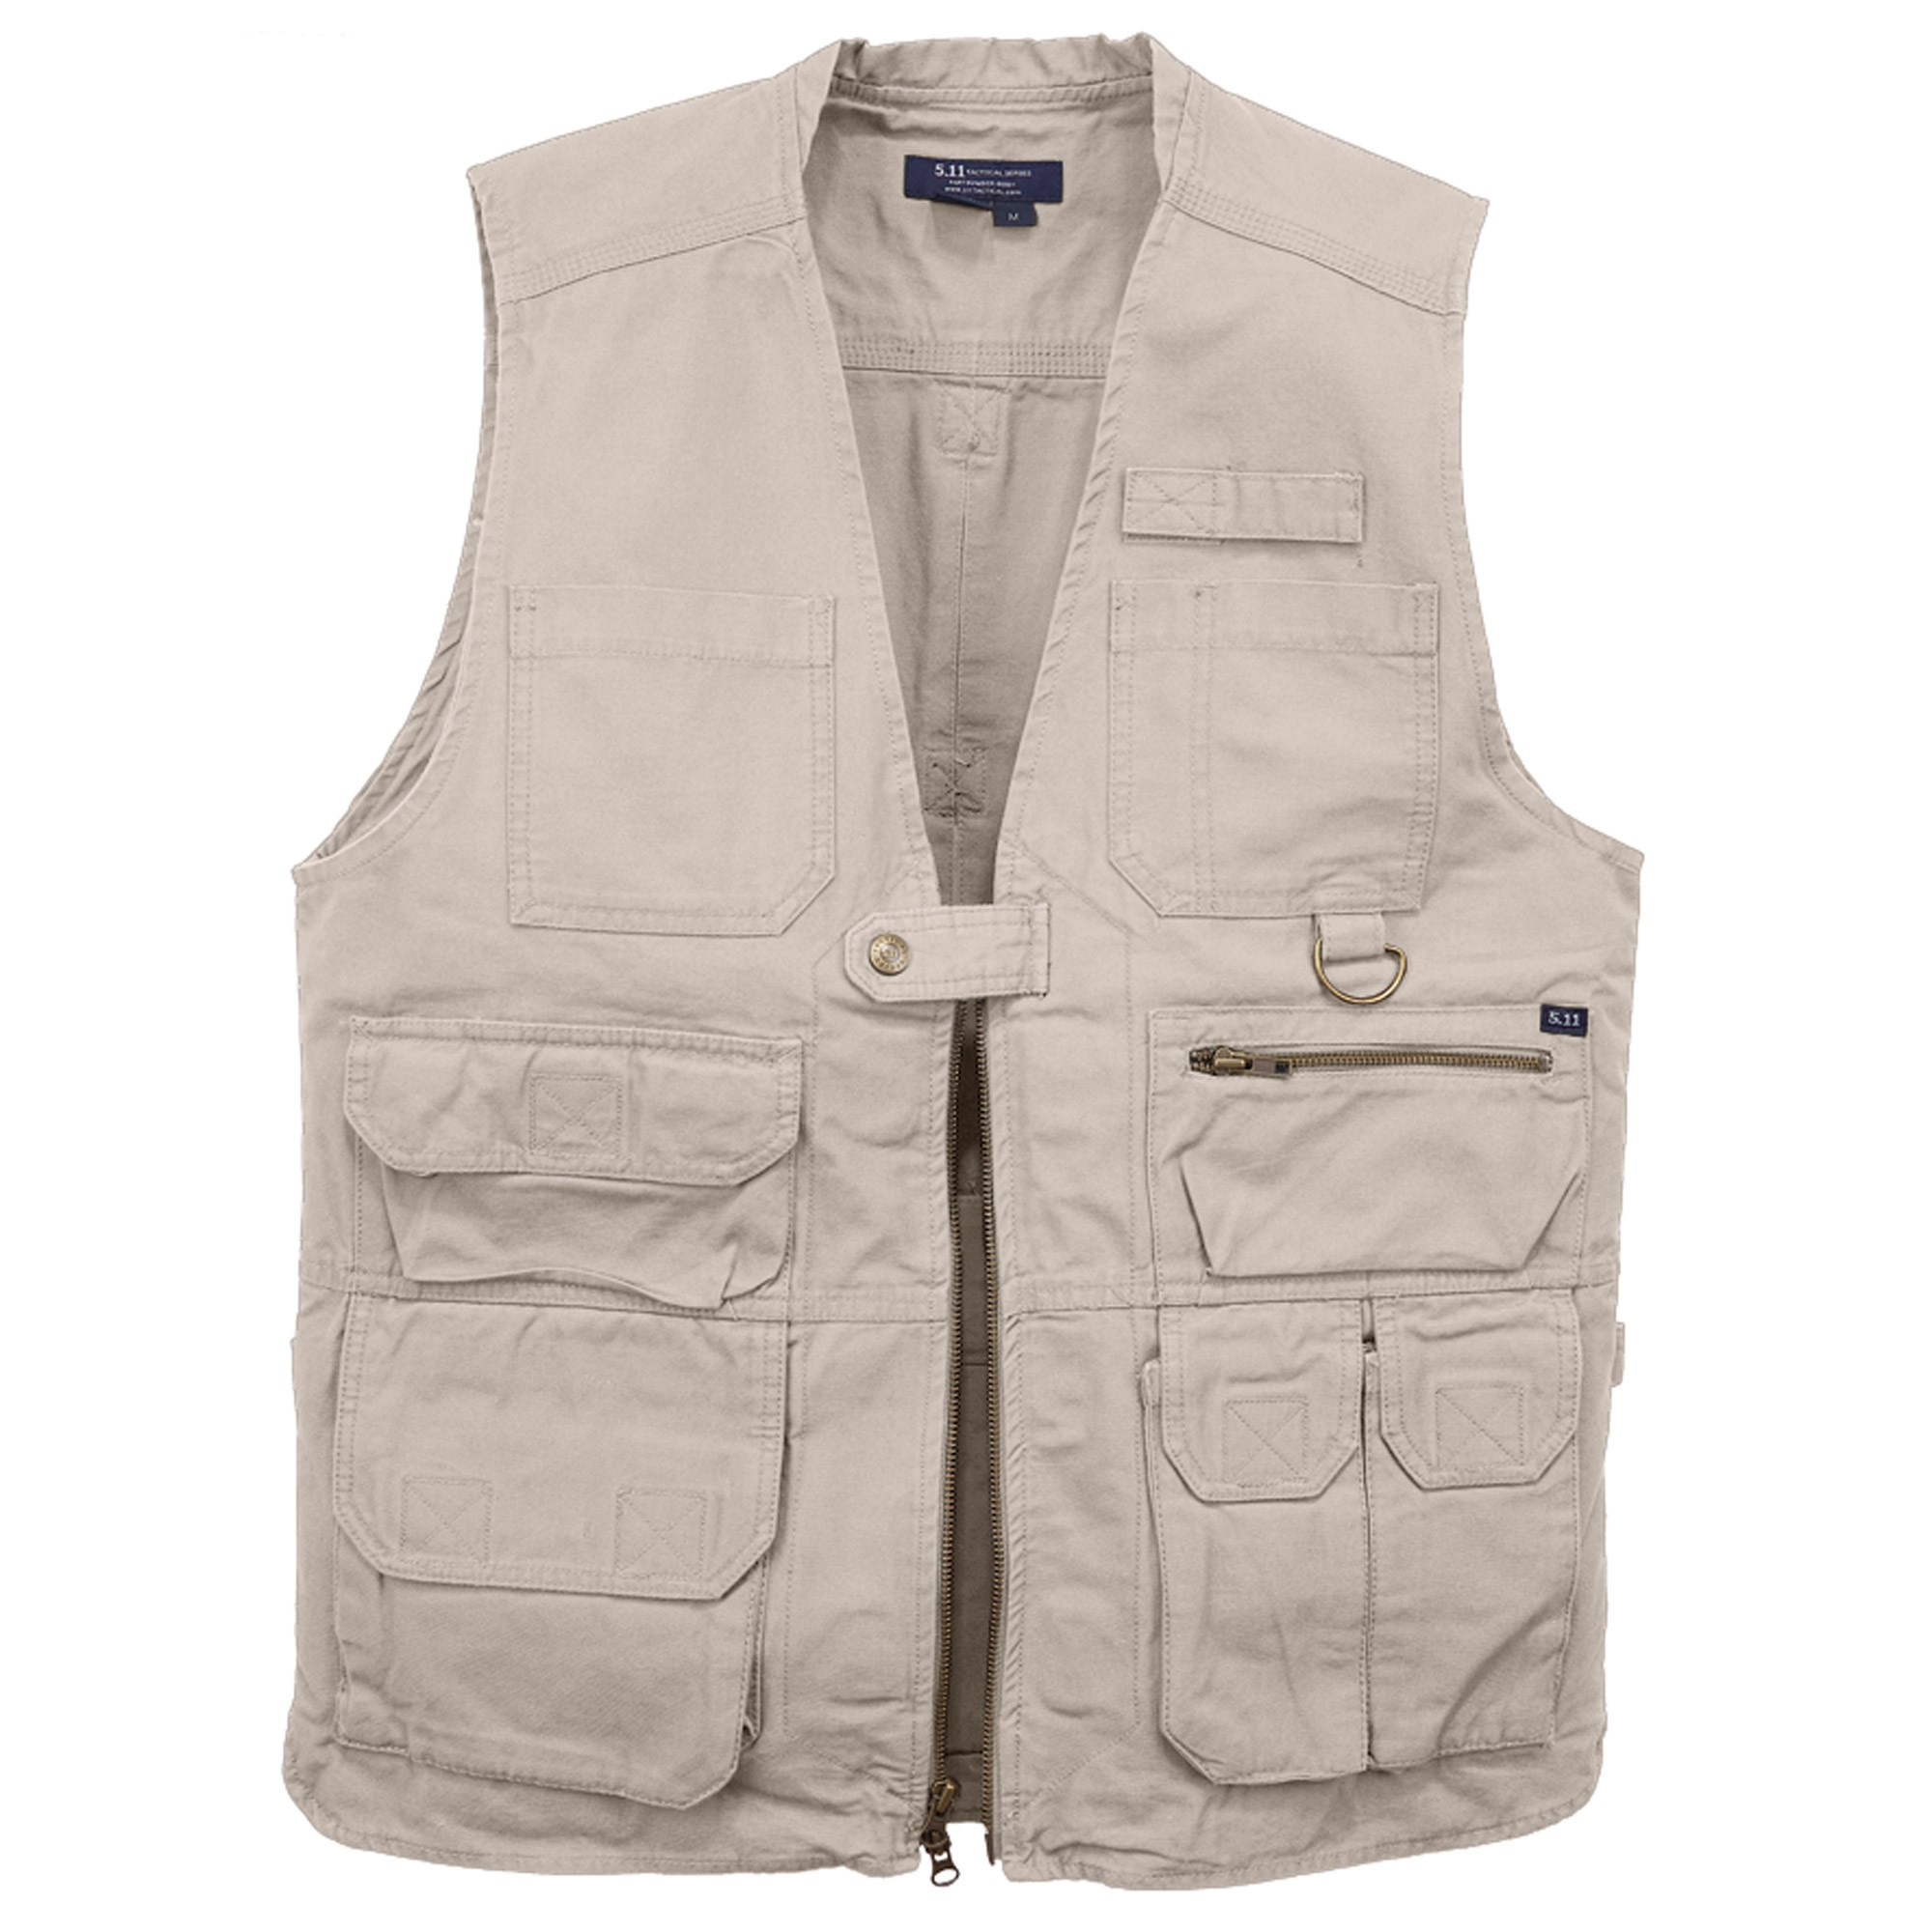 5.11 Mens Cotton Tactical Vest Style 80001